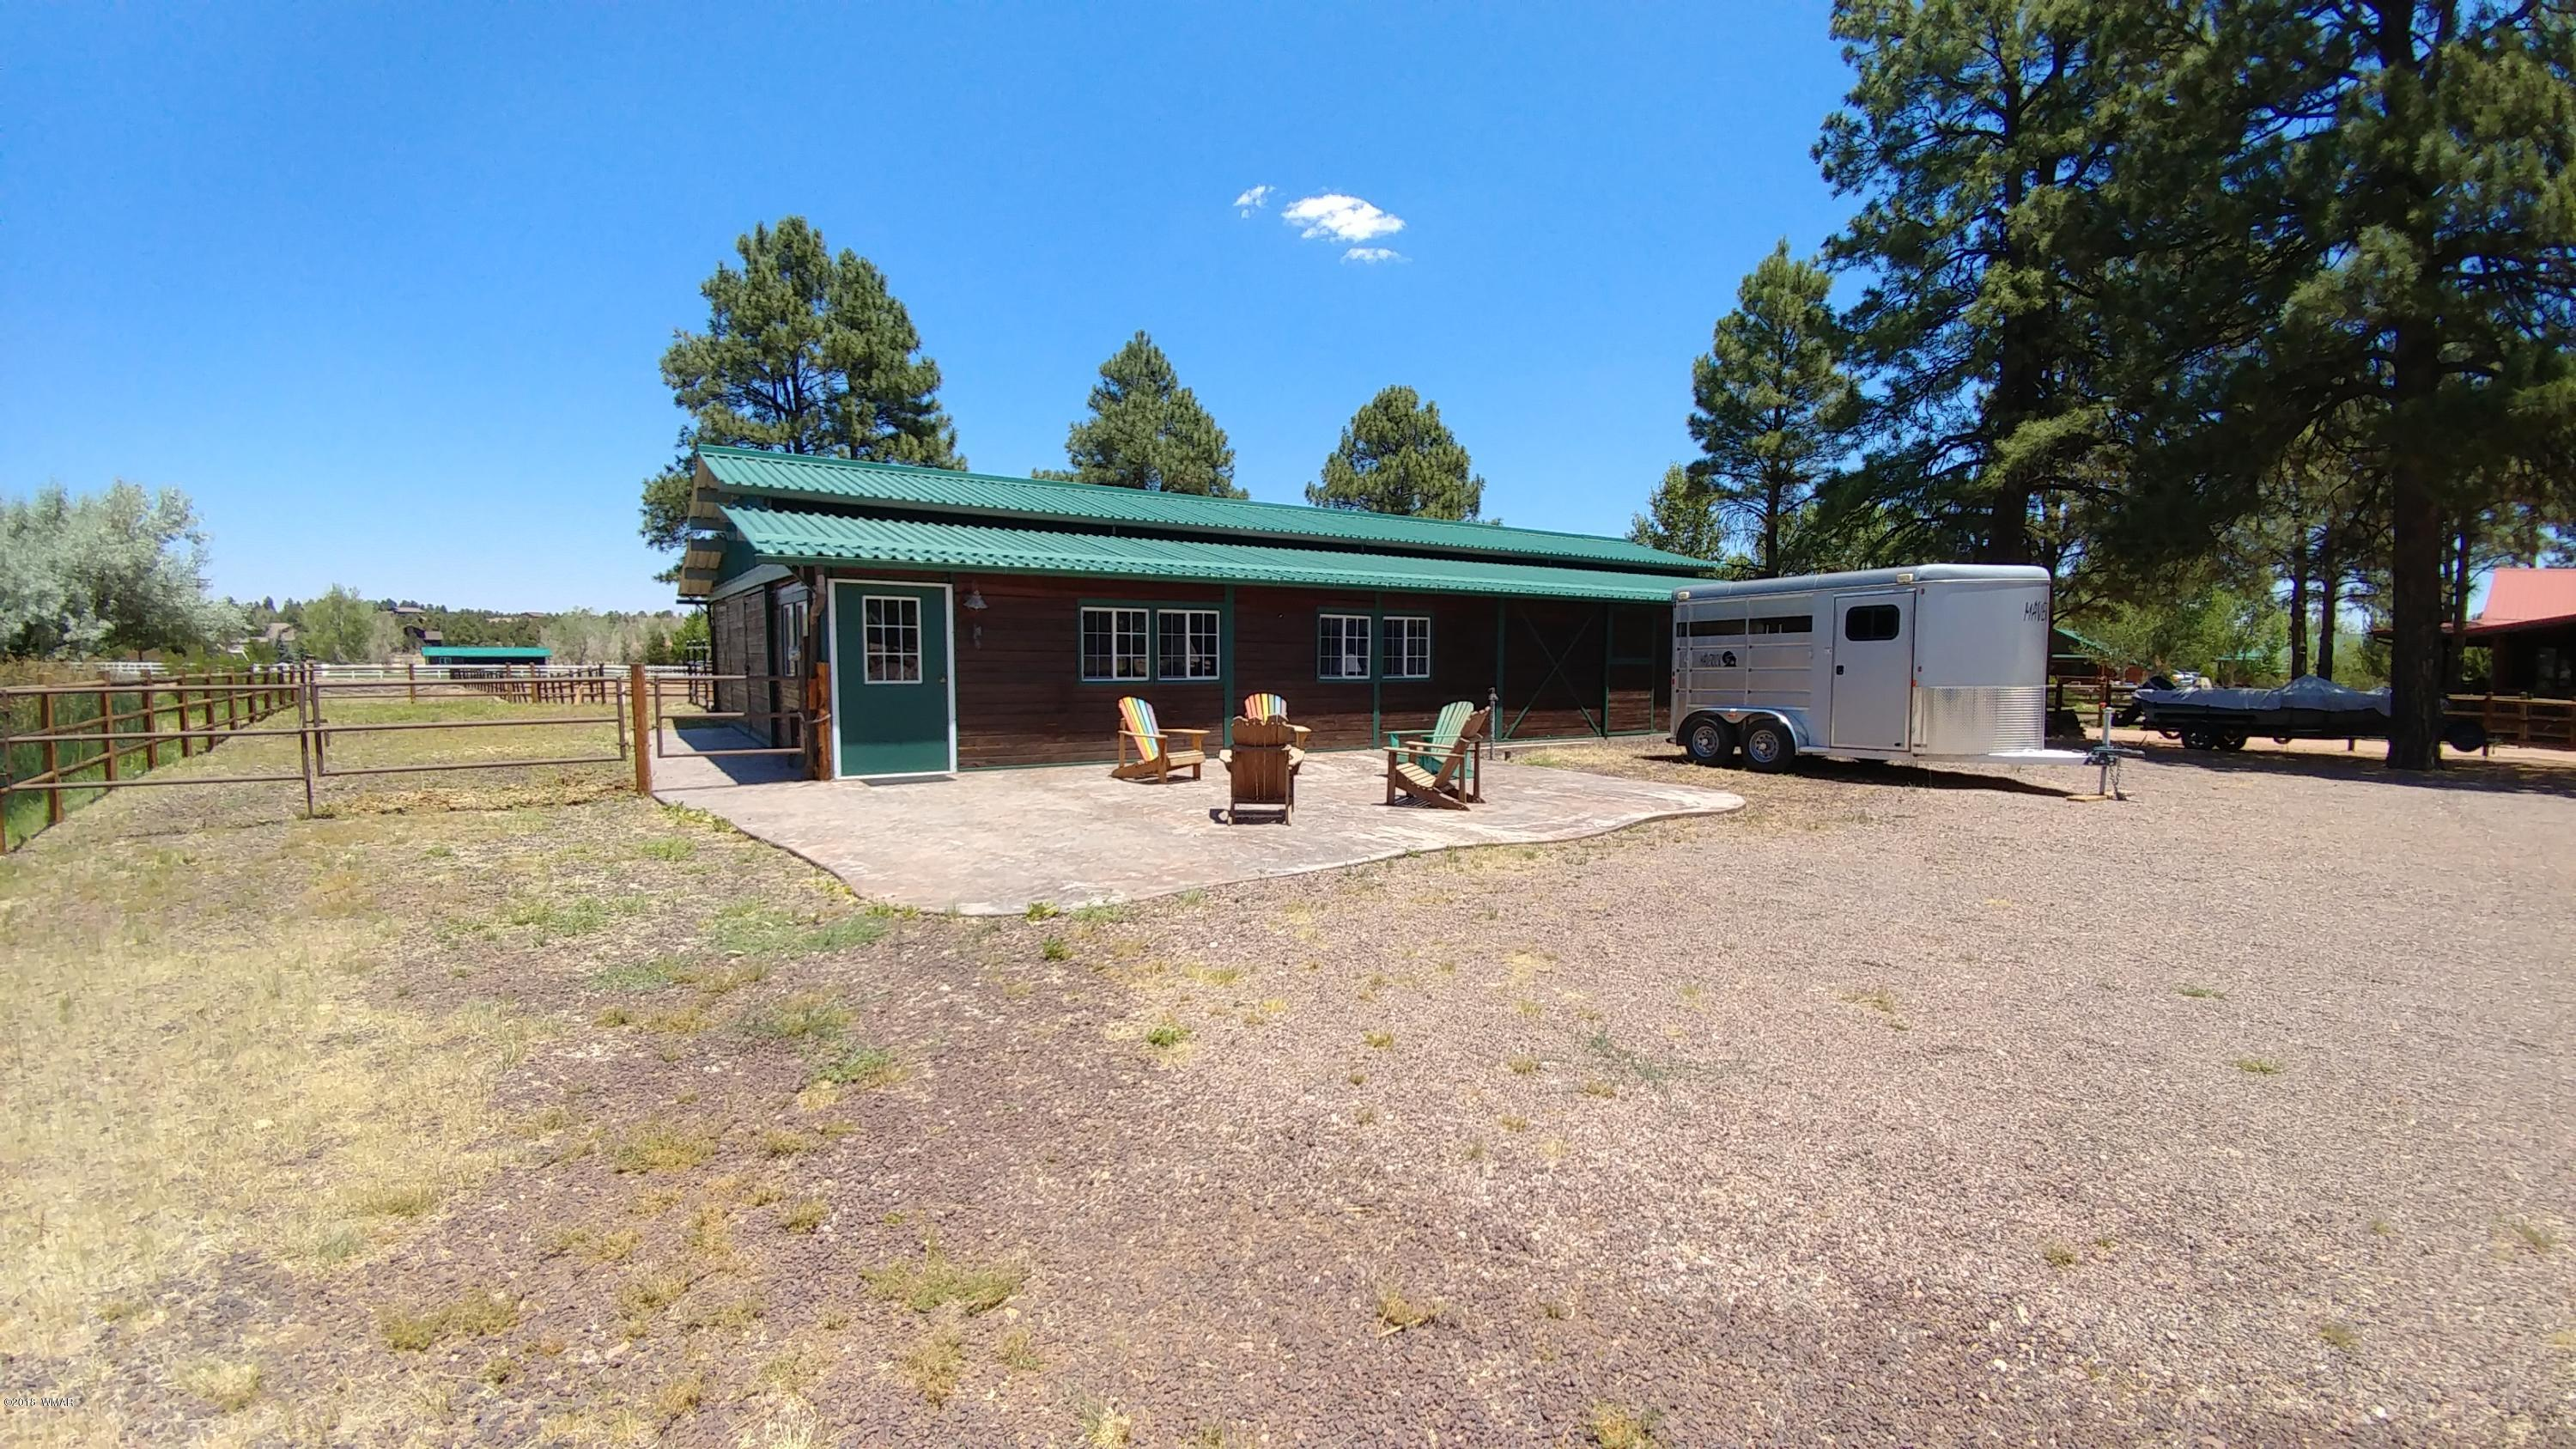 Horse Lovers! Build your dream cabin on this 1.53 acre lot with a beautiful Castlebrook barn already built. The 2560 sq. ft. barn has 6 stalls, tack room, feed room and a 11.6 X 32' separate area with living room/sleeping area, a small kitchen area that includes cupboards, microwave, small refrigerator and a separate room for toilet and sink all heated by base board electric heaters. Stalls have Nelson heated waters and feed bins, 4 stalls have turn out pens. Seller recently put in a 96'X64' fenced in arena. All this on a private pond and fenced in pasture area. The property has several tall pine and level open area to build a cabin. Ride out to the National Forest right from your property.. This is a rare find in the White Mountains! Come and enjoy all the seasons in this beautiful area